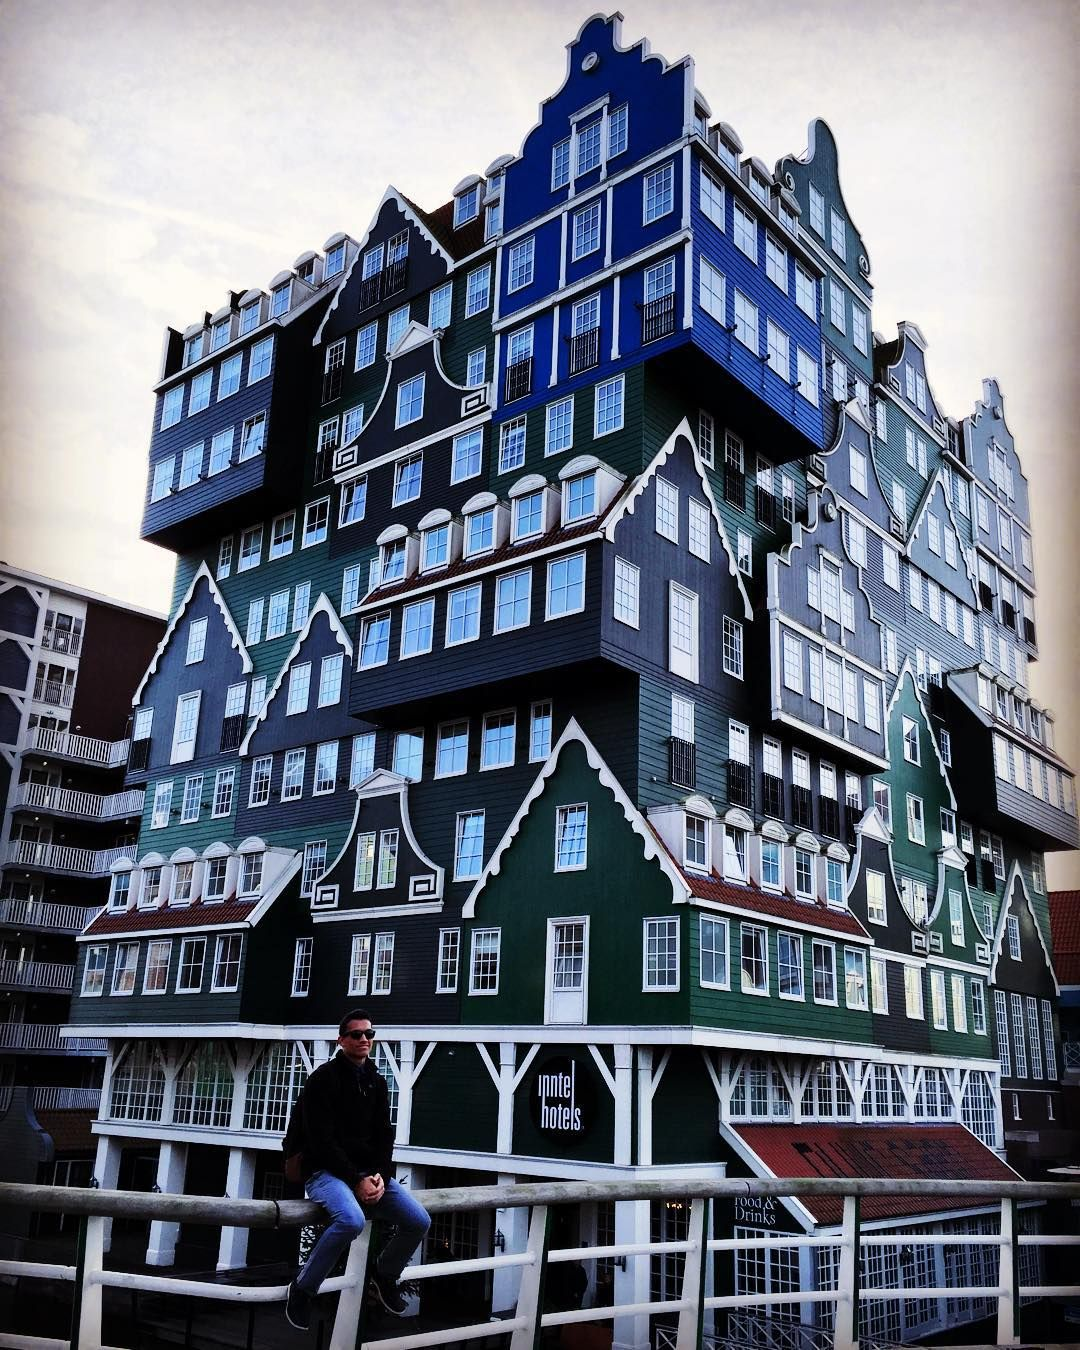 #zaandam Where the buildings look like an old Nintendo game by suriod05